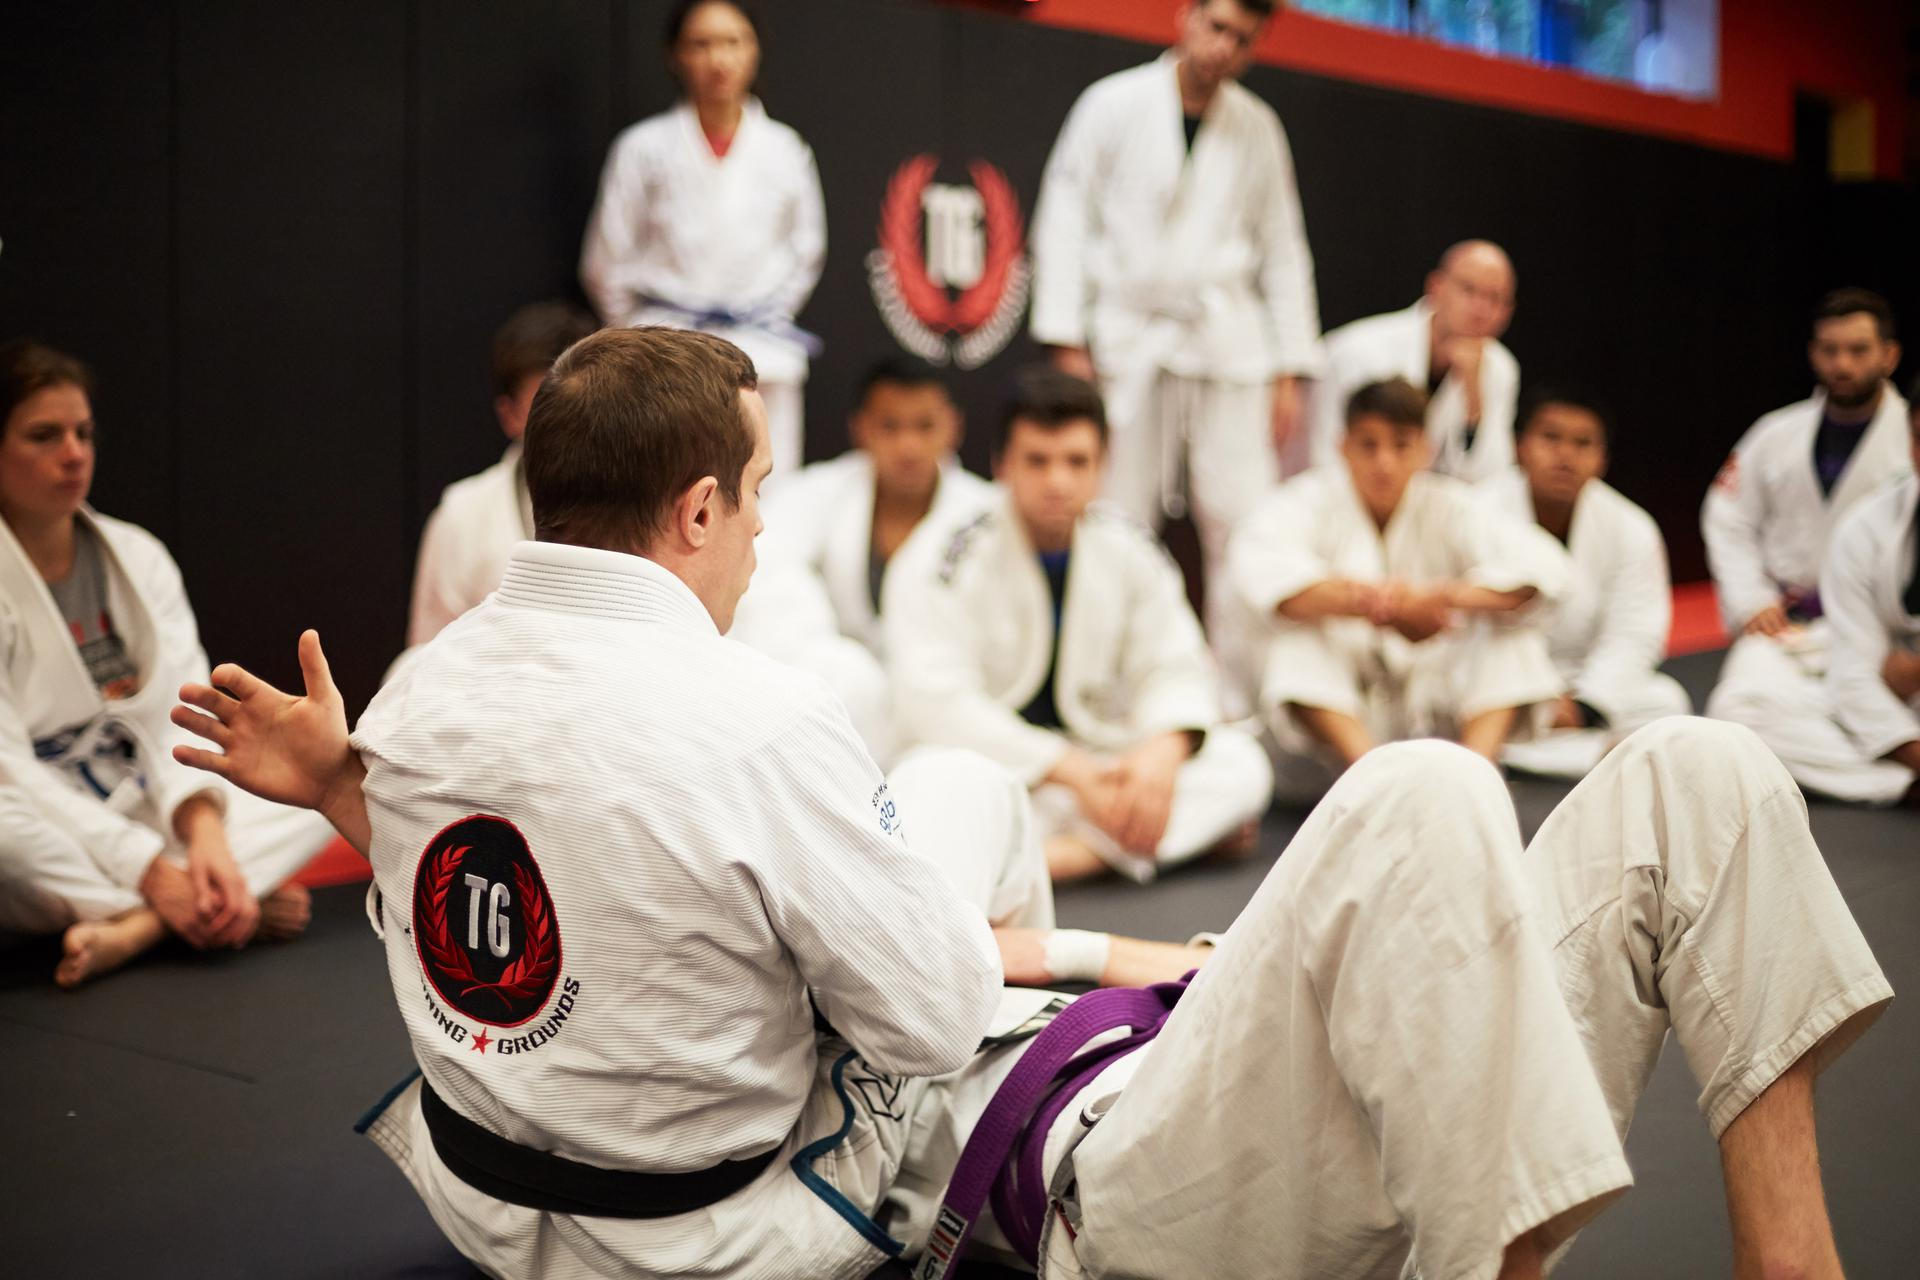 A view inside a martial arts school in bergen county where an instructor is teaching his student how to perform an armbar